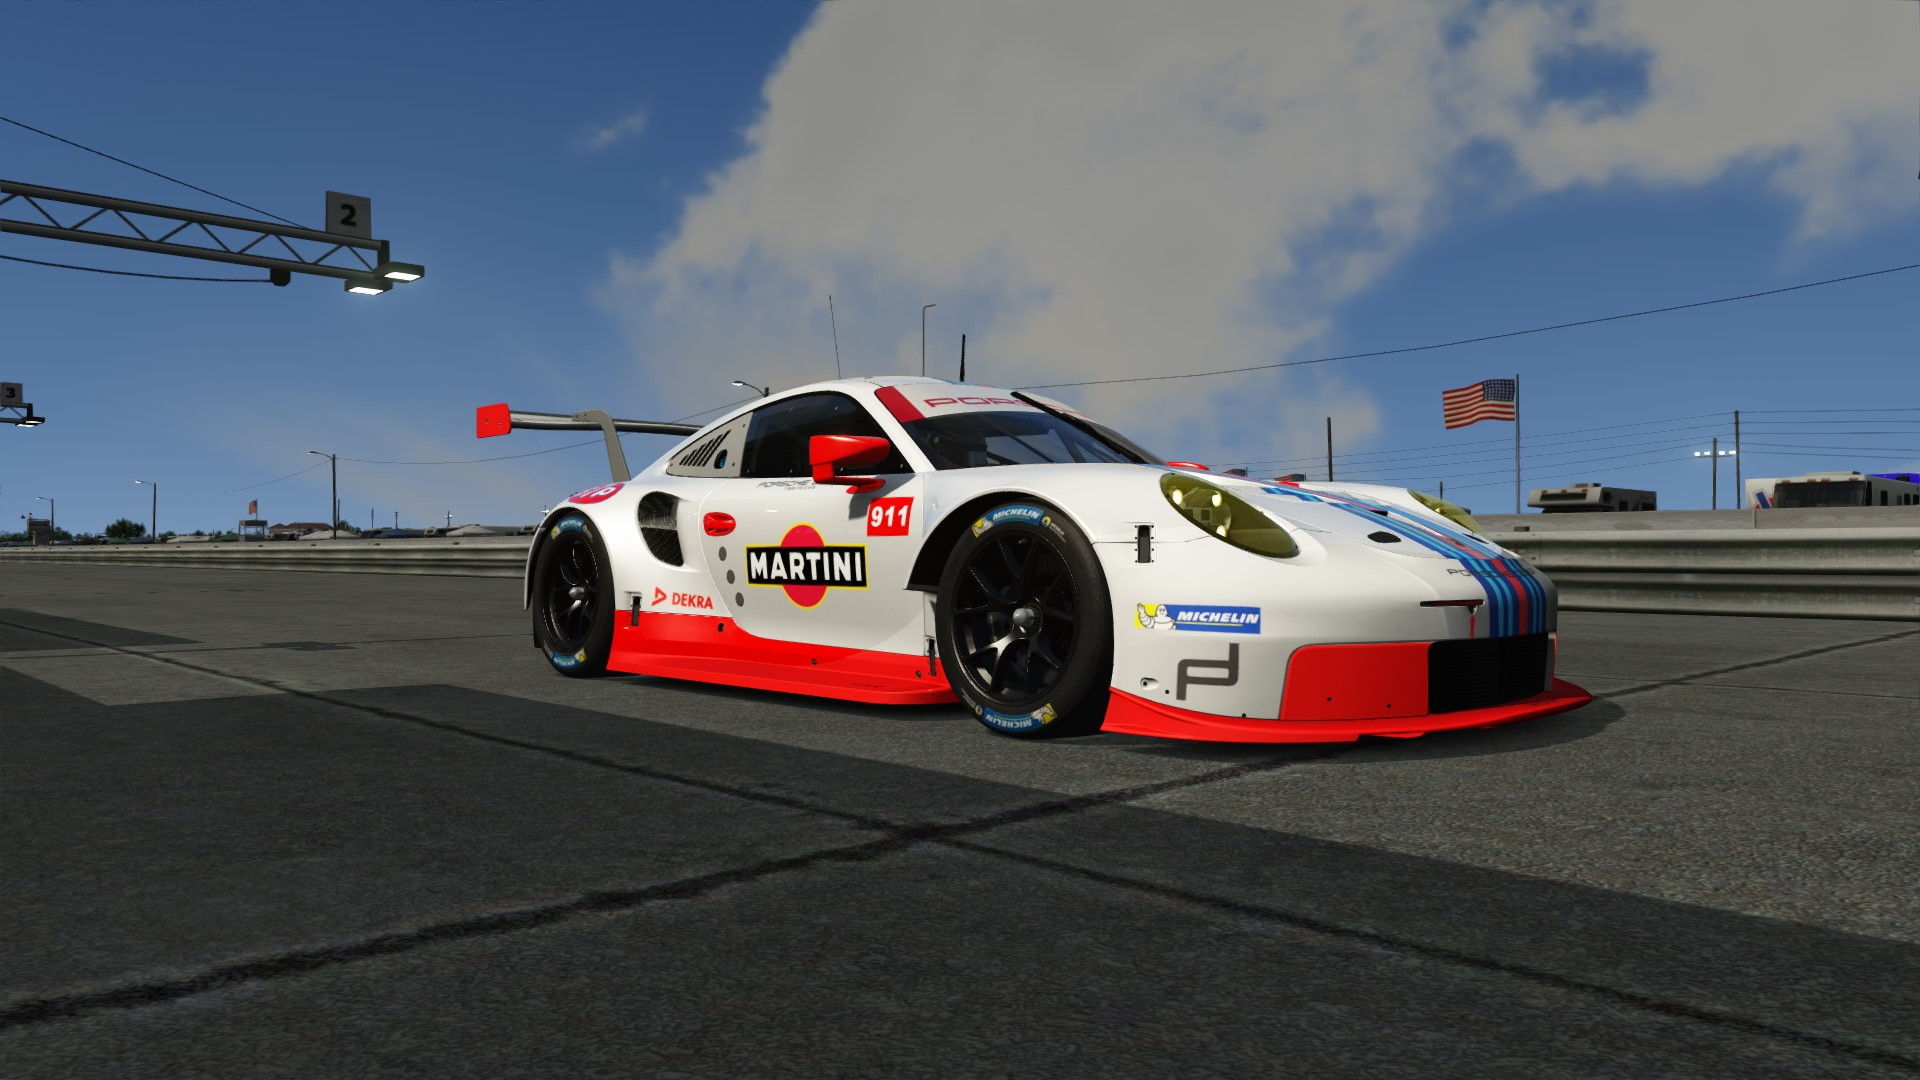 Screenshot_ks_porsche_911_rsr_2017_sebring_24-3-117-23-2-54.jpg